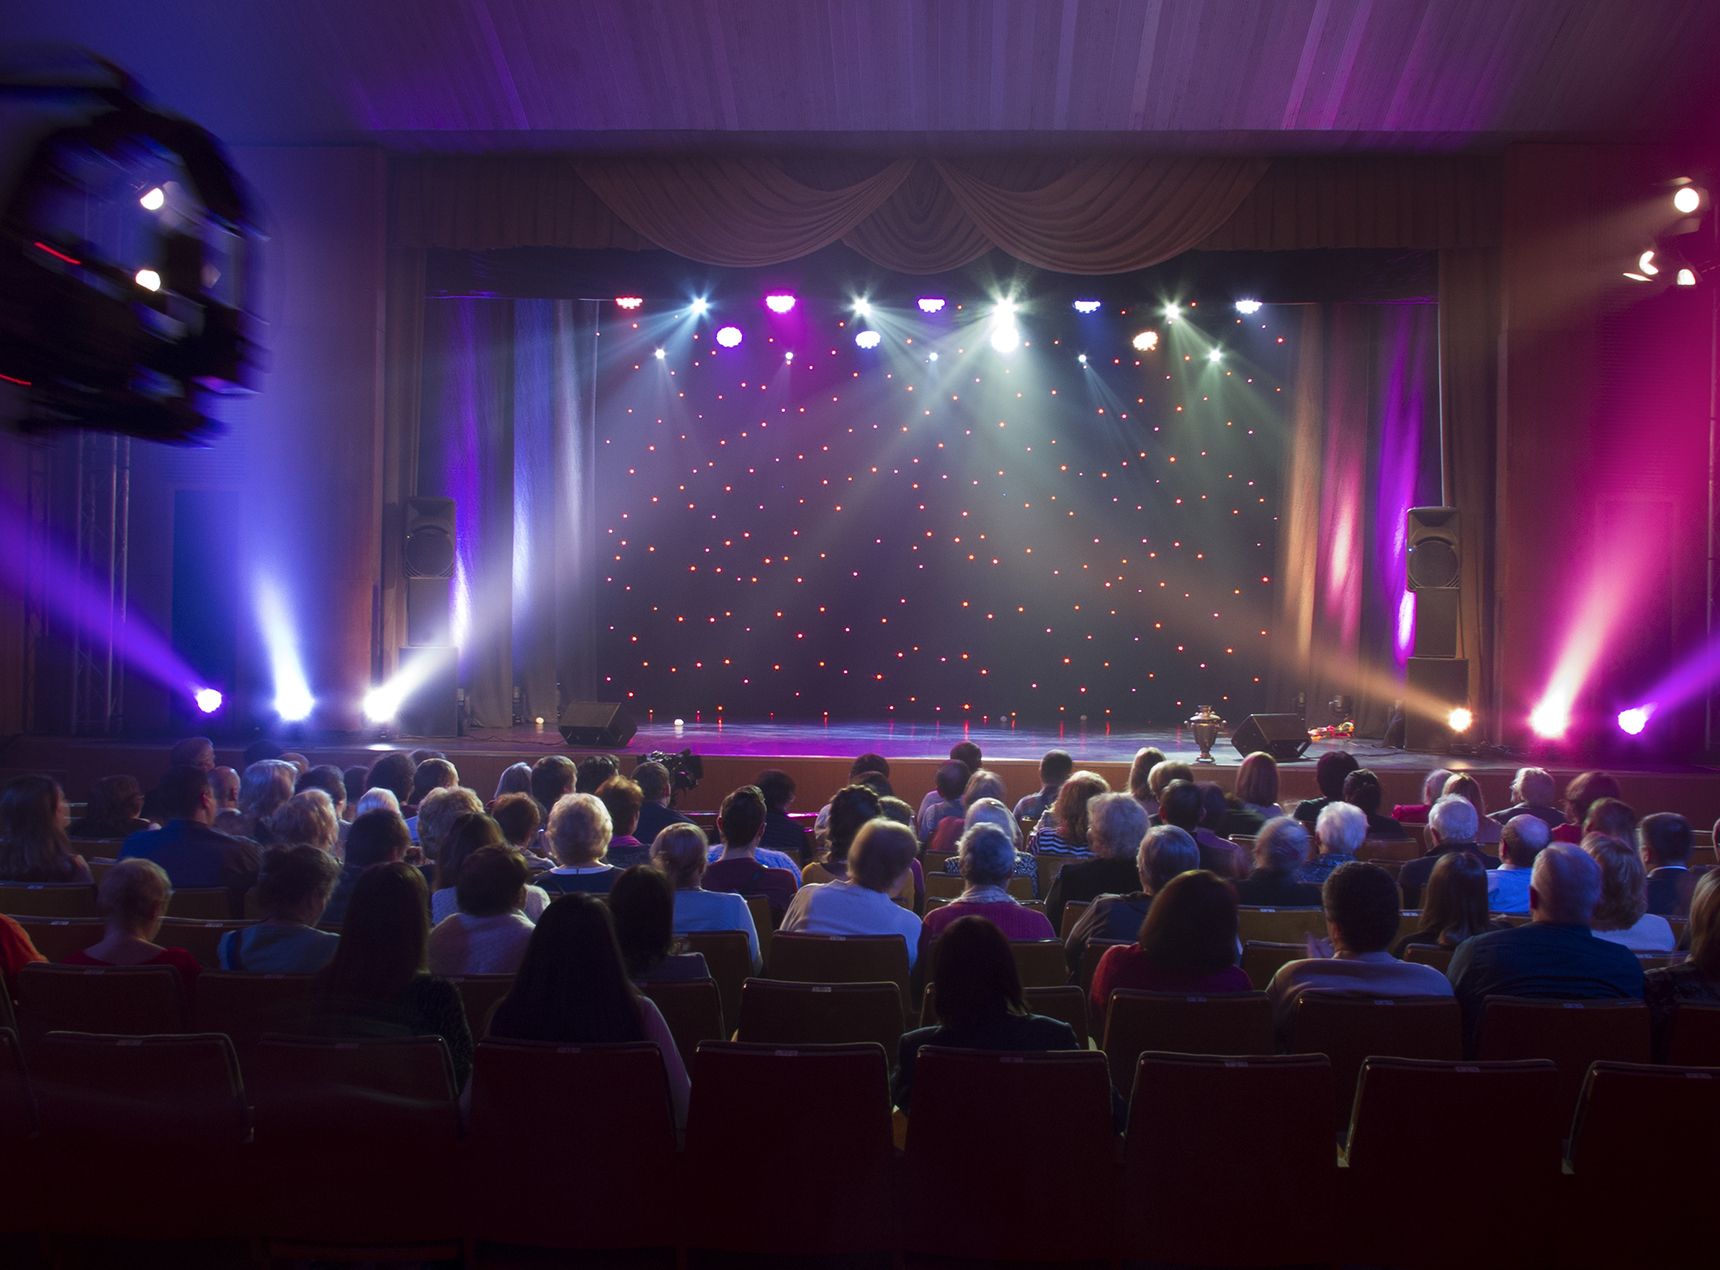 Theatre Space - Based on the Castlereagh Road, Belfast. Offering a modern rental theatre space with 60 seats and professional sound and lighting.